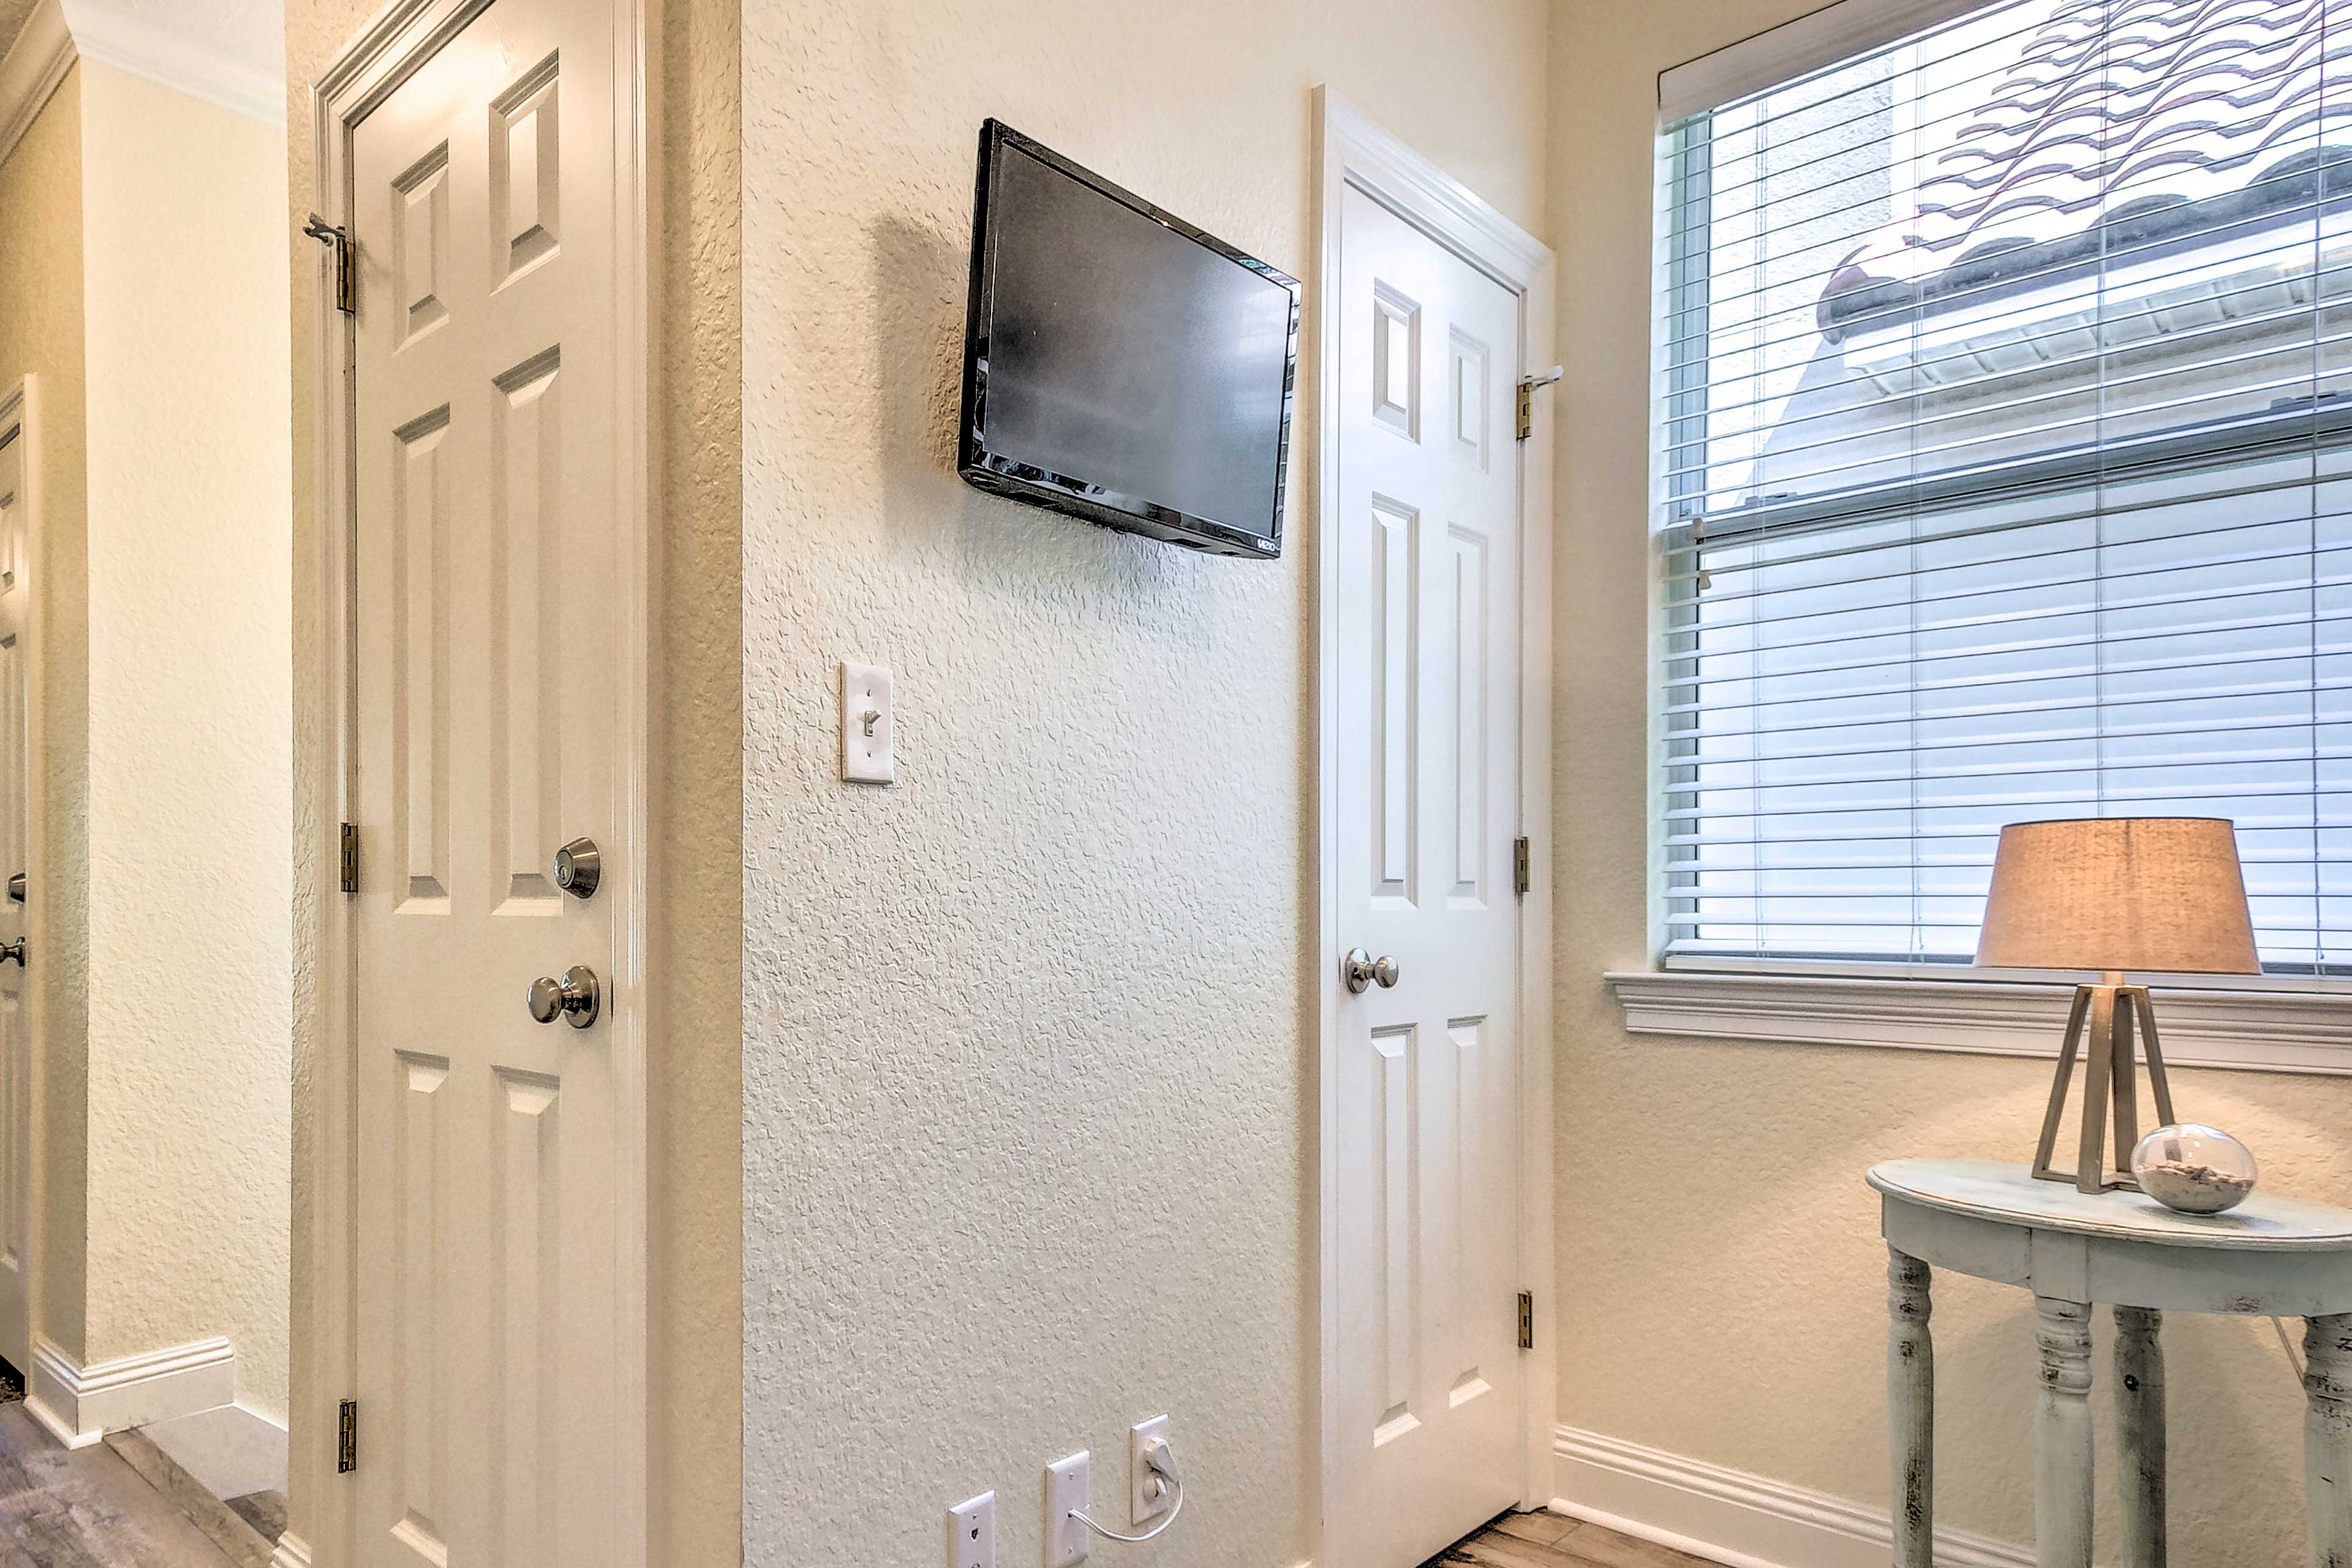 The cozy nook features its own flat-screen TV.